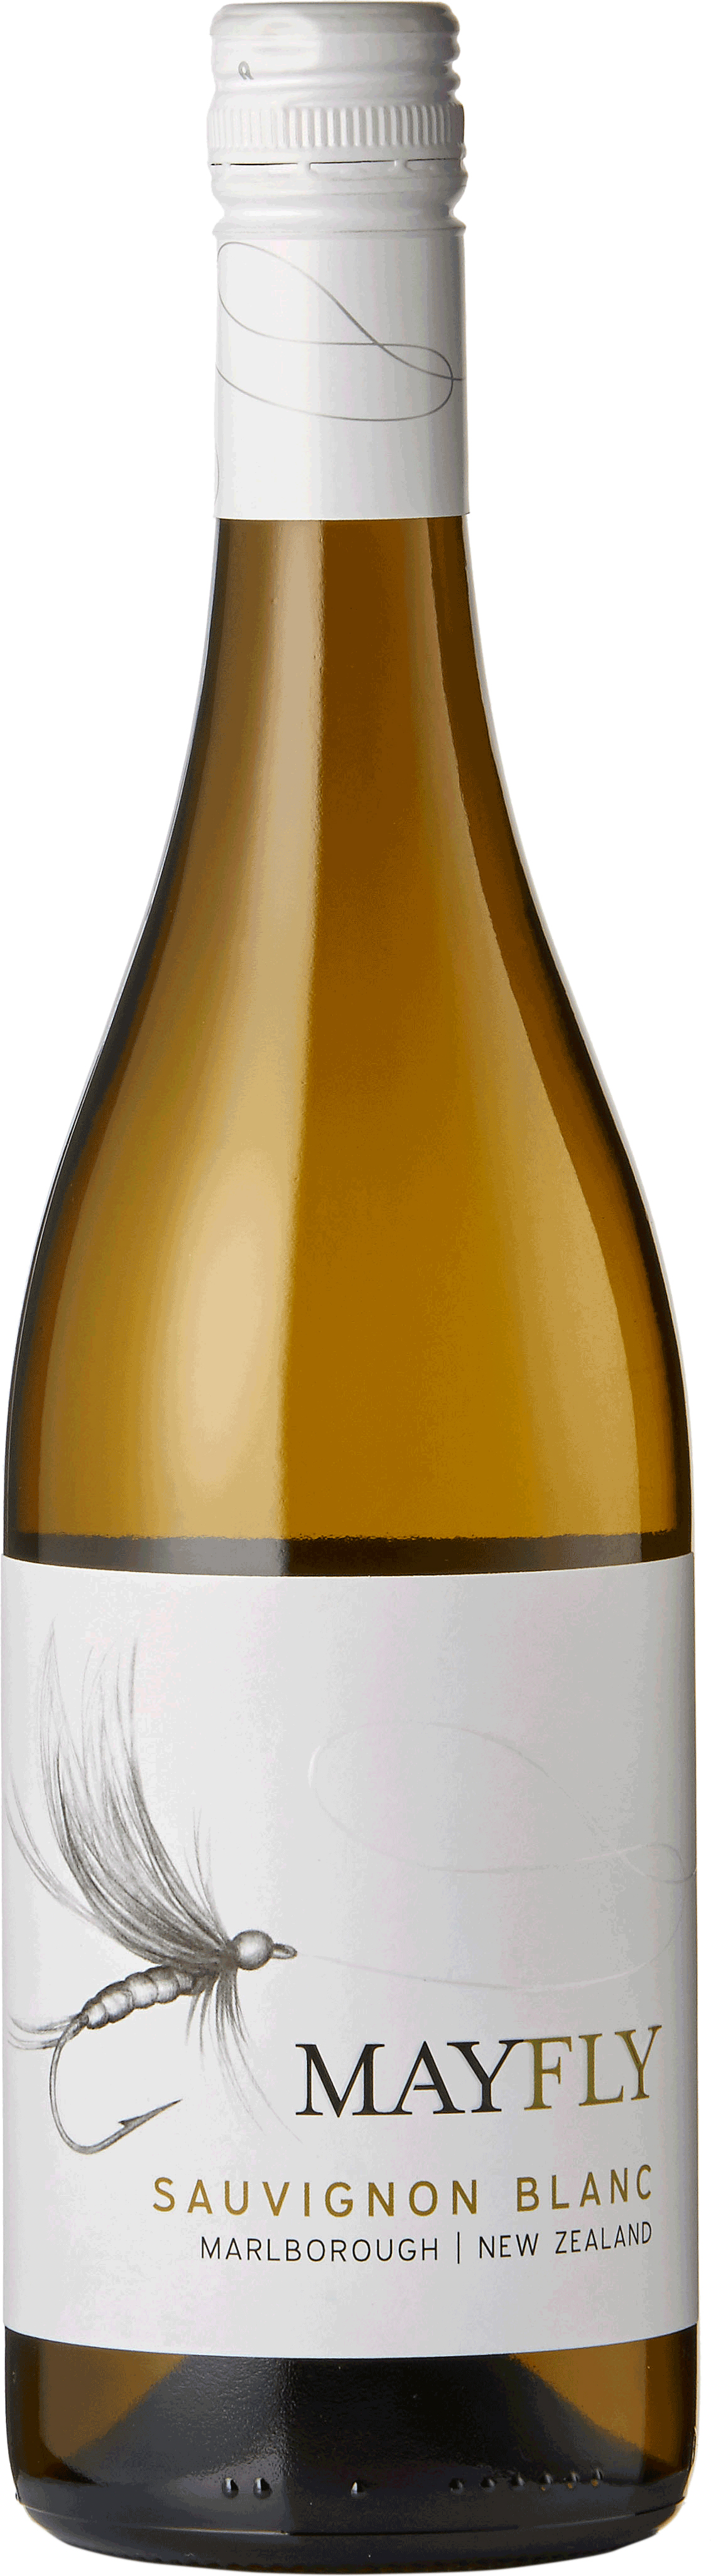 Mayfly - Sauvignon Blanc Marlborough 2019 6x 75cl Bottles